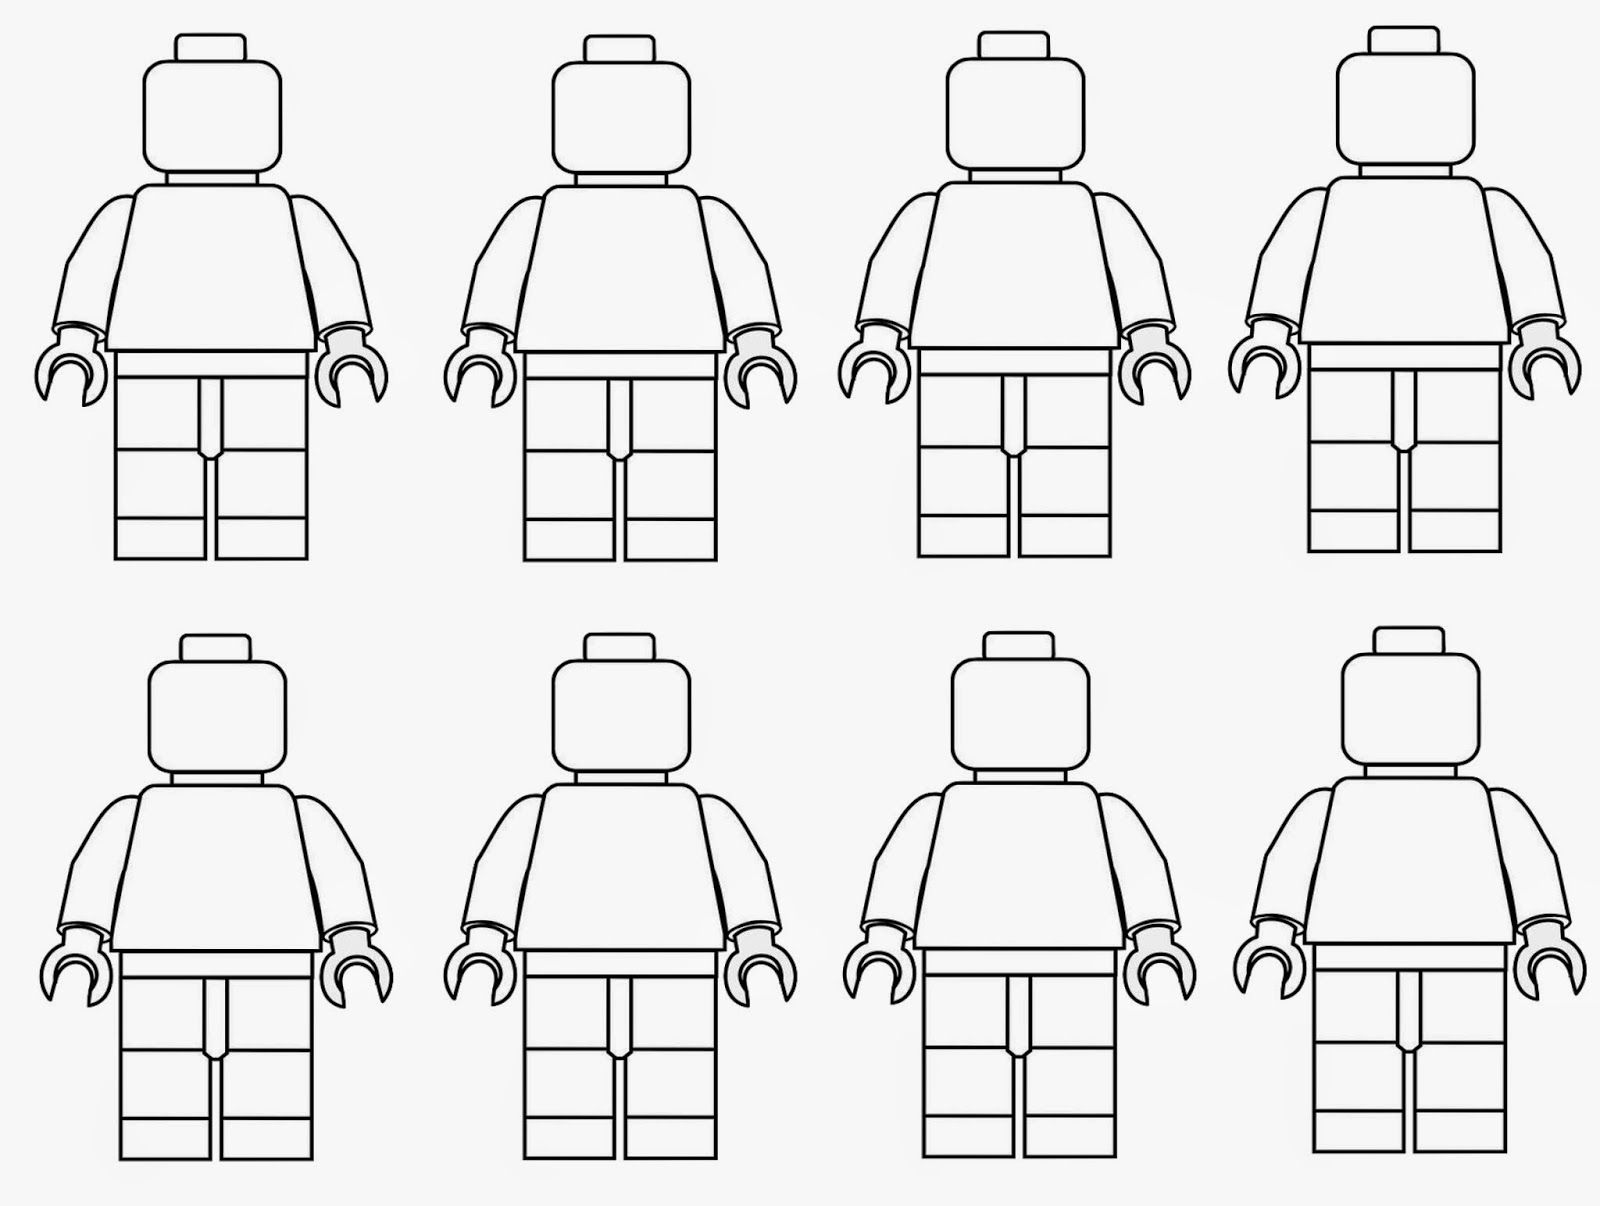 Lego Inspired Printable Coloring Pages Lego Coloring Pages Lego Coloring Lego Movie Coloring Pages